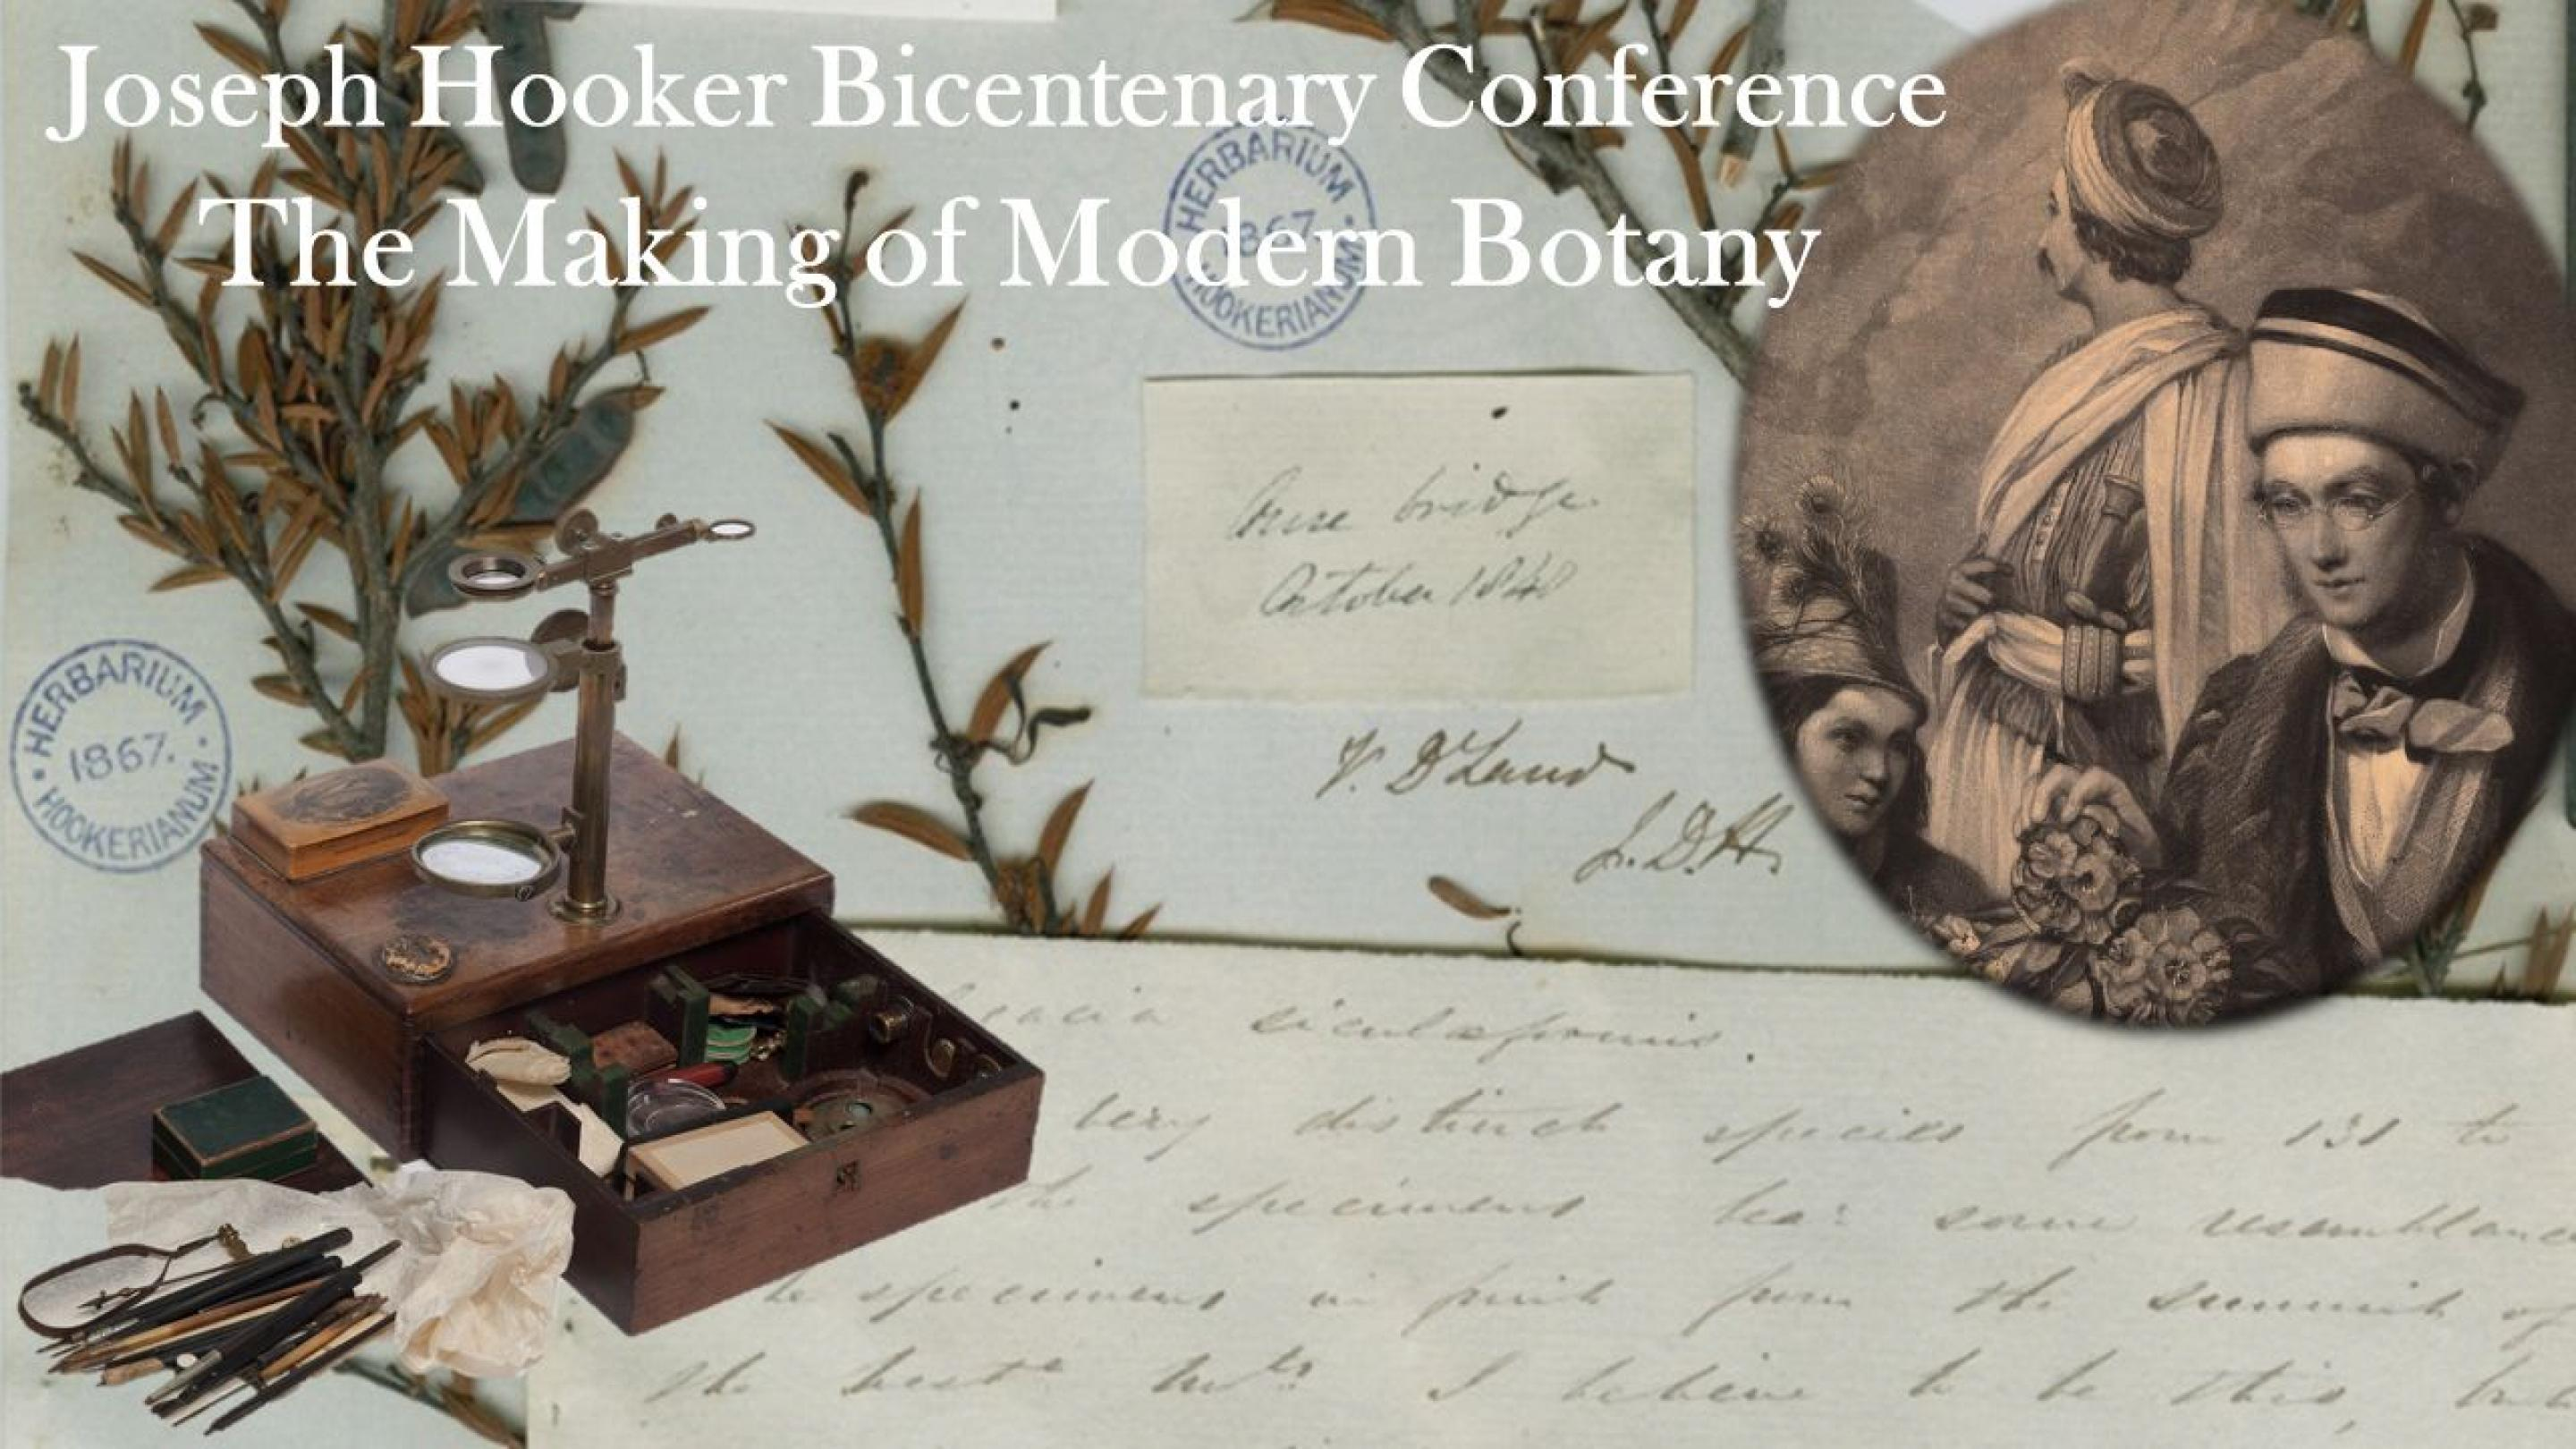 Making of Modern Botany' the Joseph Hooker bicentenary conference poster